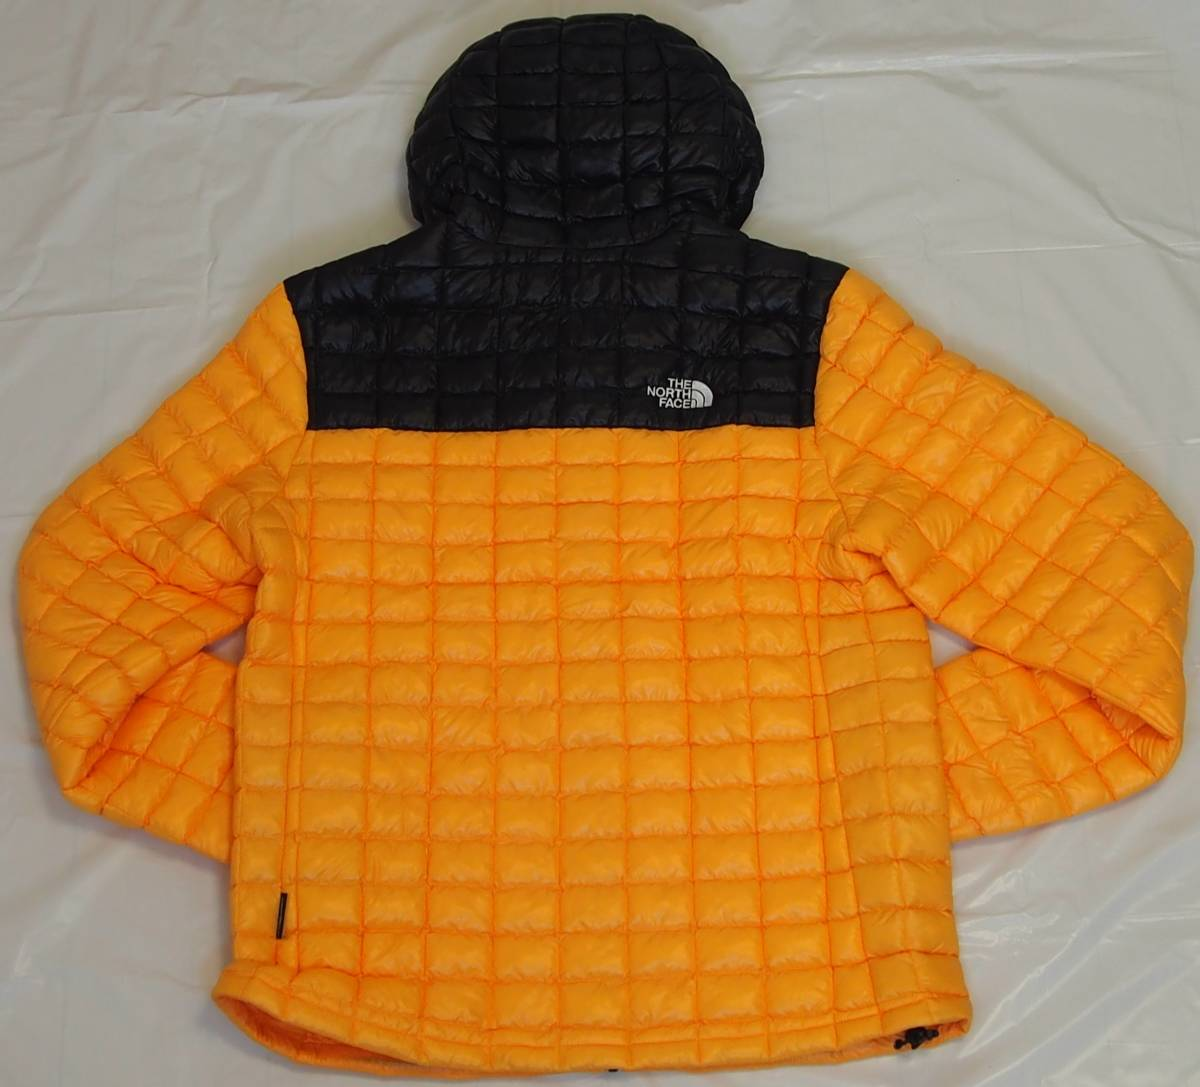 【USA購入、未使用タグ付】ノースフェイス メンズ Thermoball Eco ジャケット フード付 L イエロー The North Face Thermoball Eco Jacket_画像3